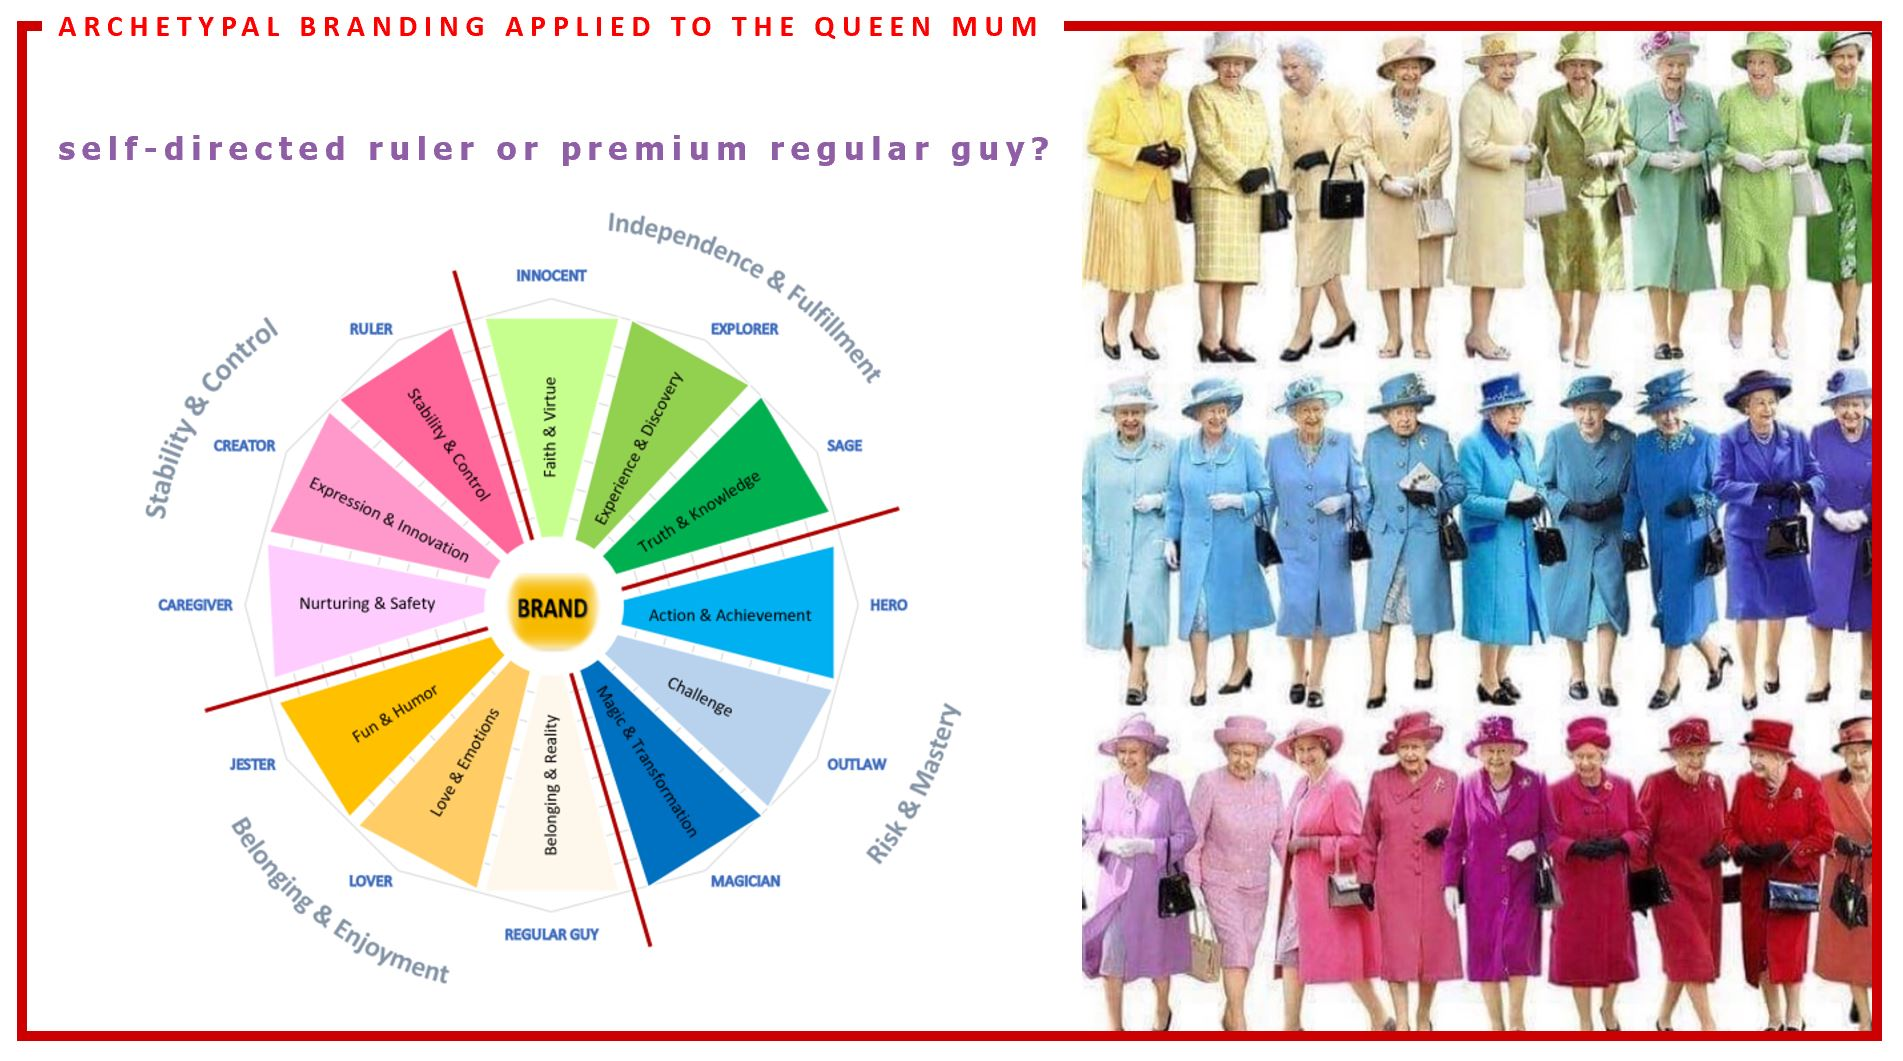 the twelve archetypes wheel  applied to Elisabeth II with her colored dresses and the question self-directed ruler or premium regular guy?